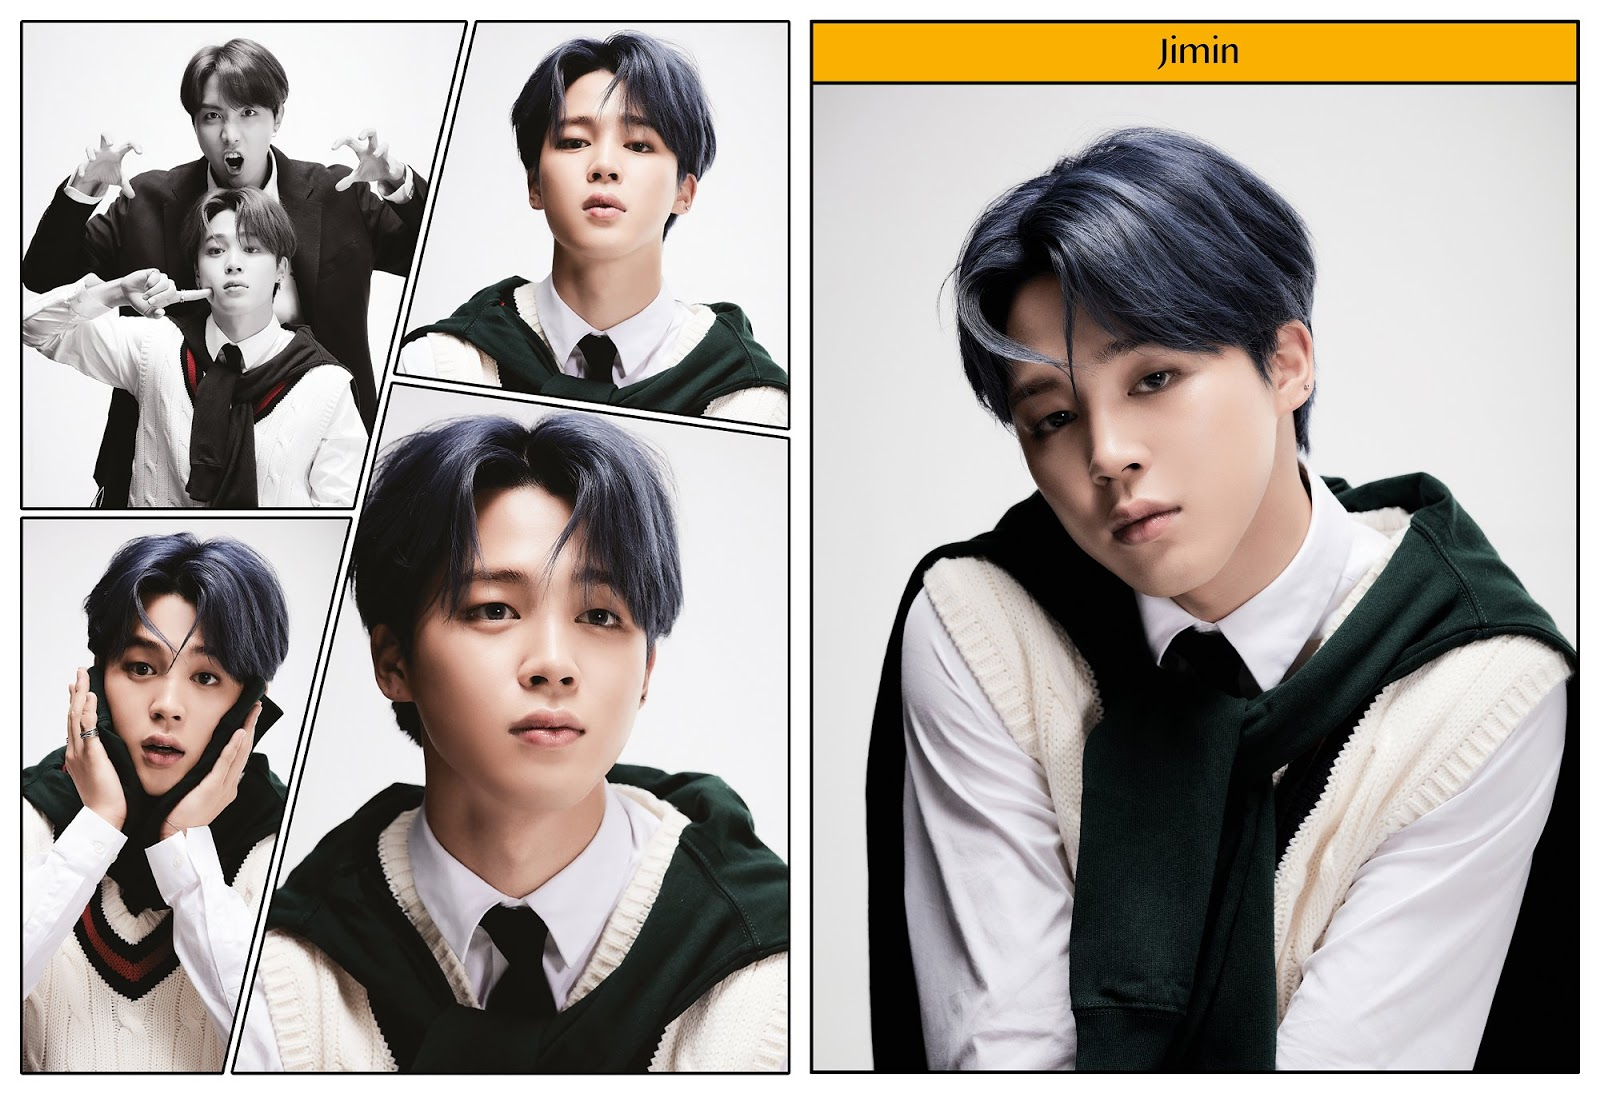 BTS Cool Comic Characters Concept In Comeback Teaser Become a Favorite, Fans Expect This